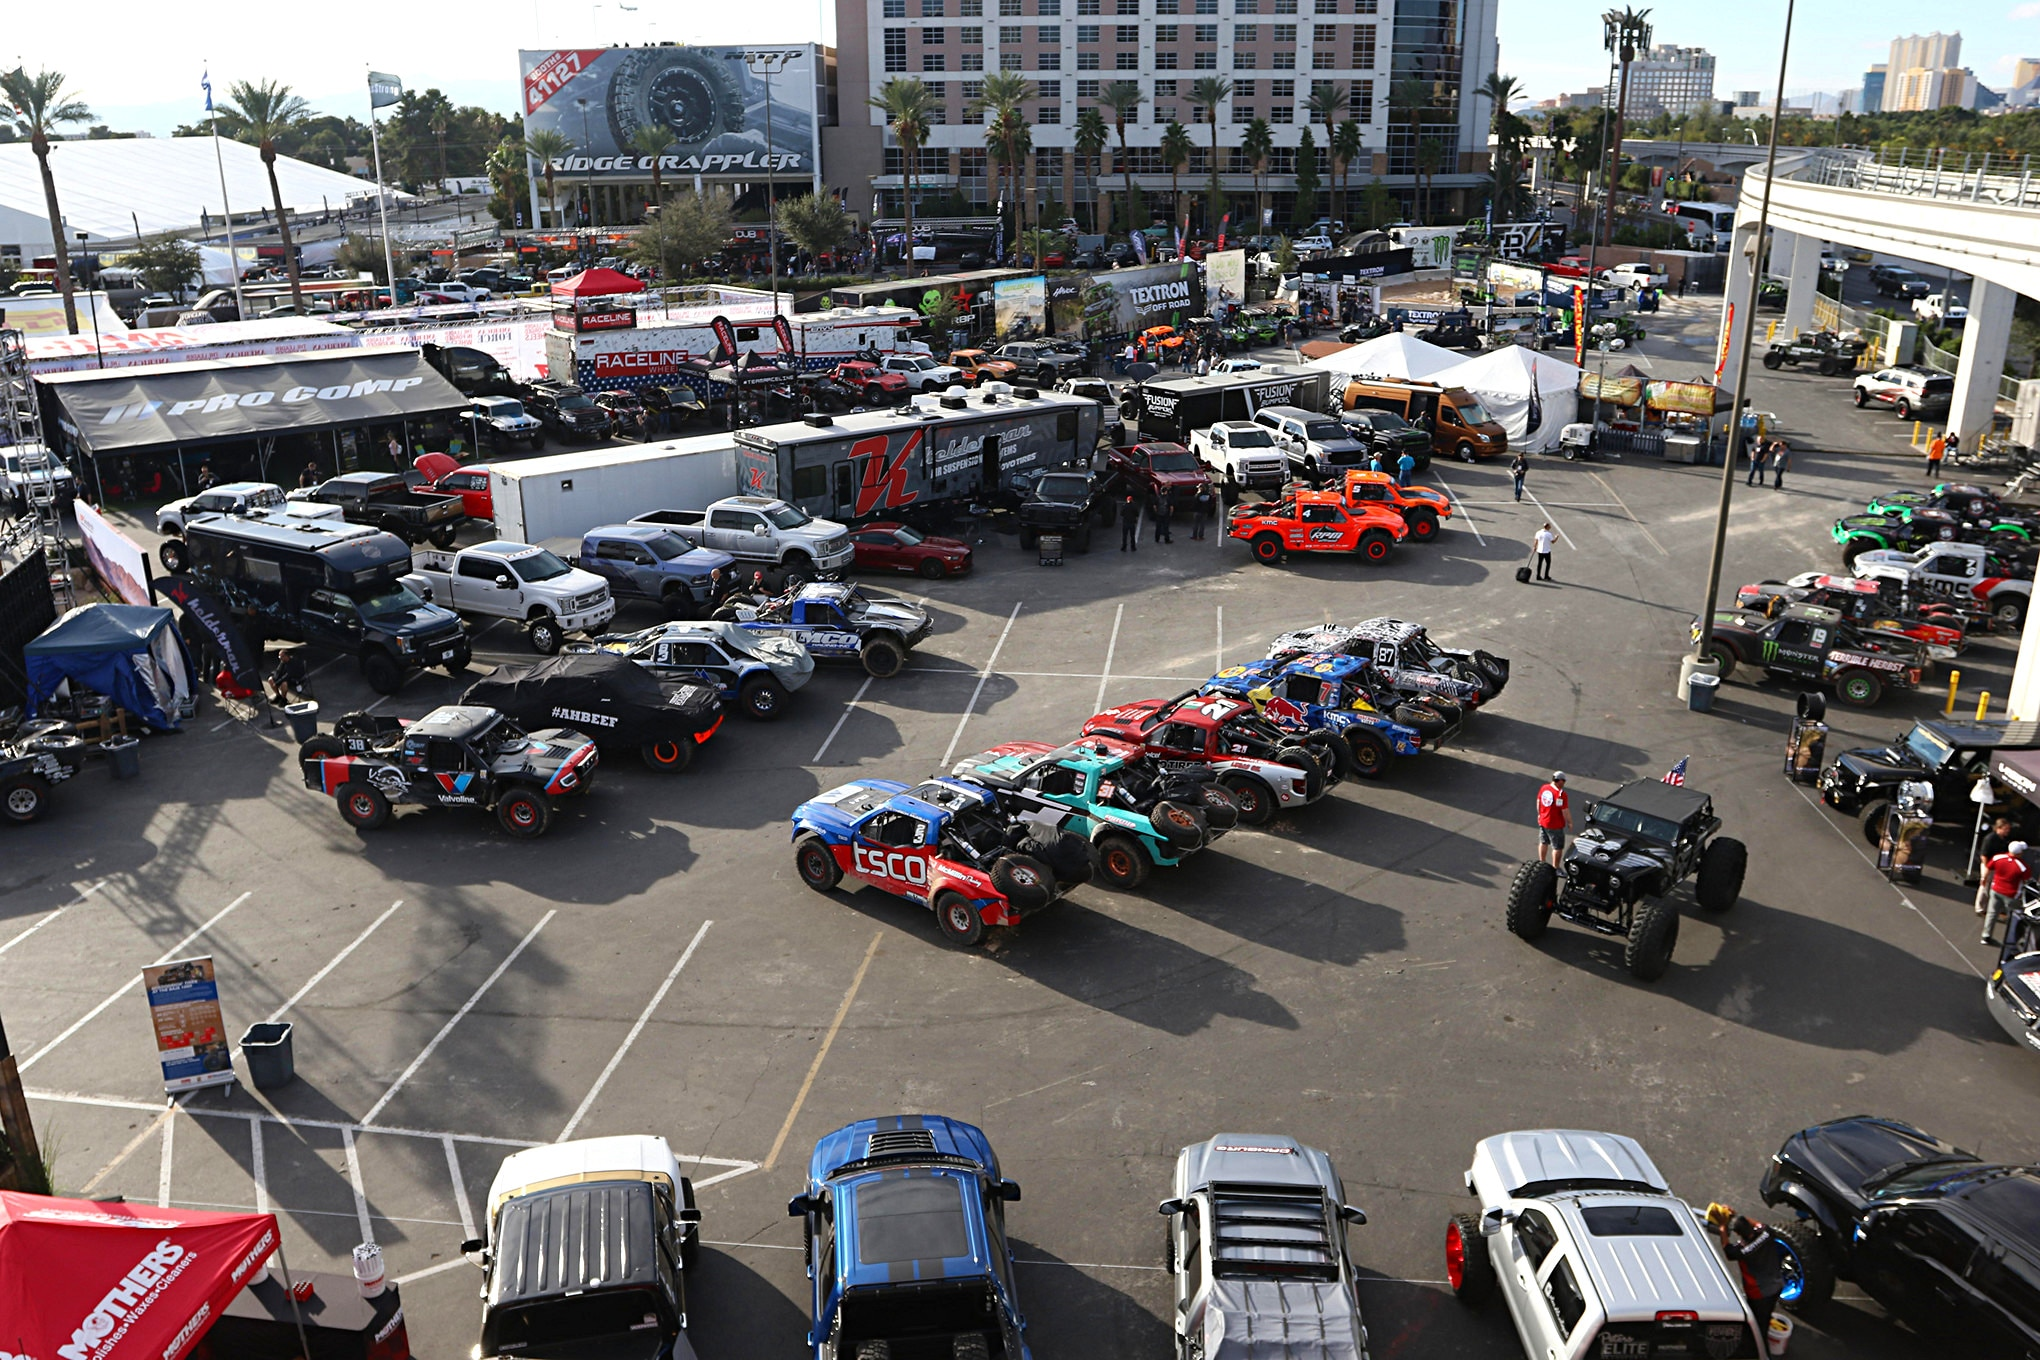 In addition to many vendors booths, the SCORE/BFGoodrich area was the staging area for the race trucks that were going to be qualifying Tuesday night.